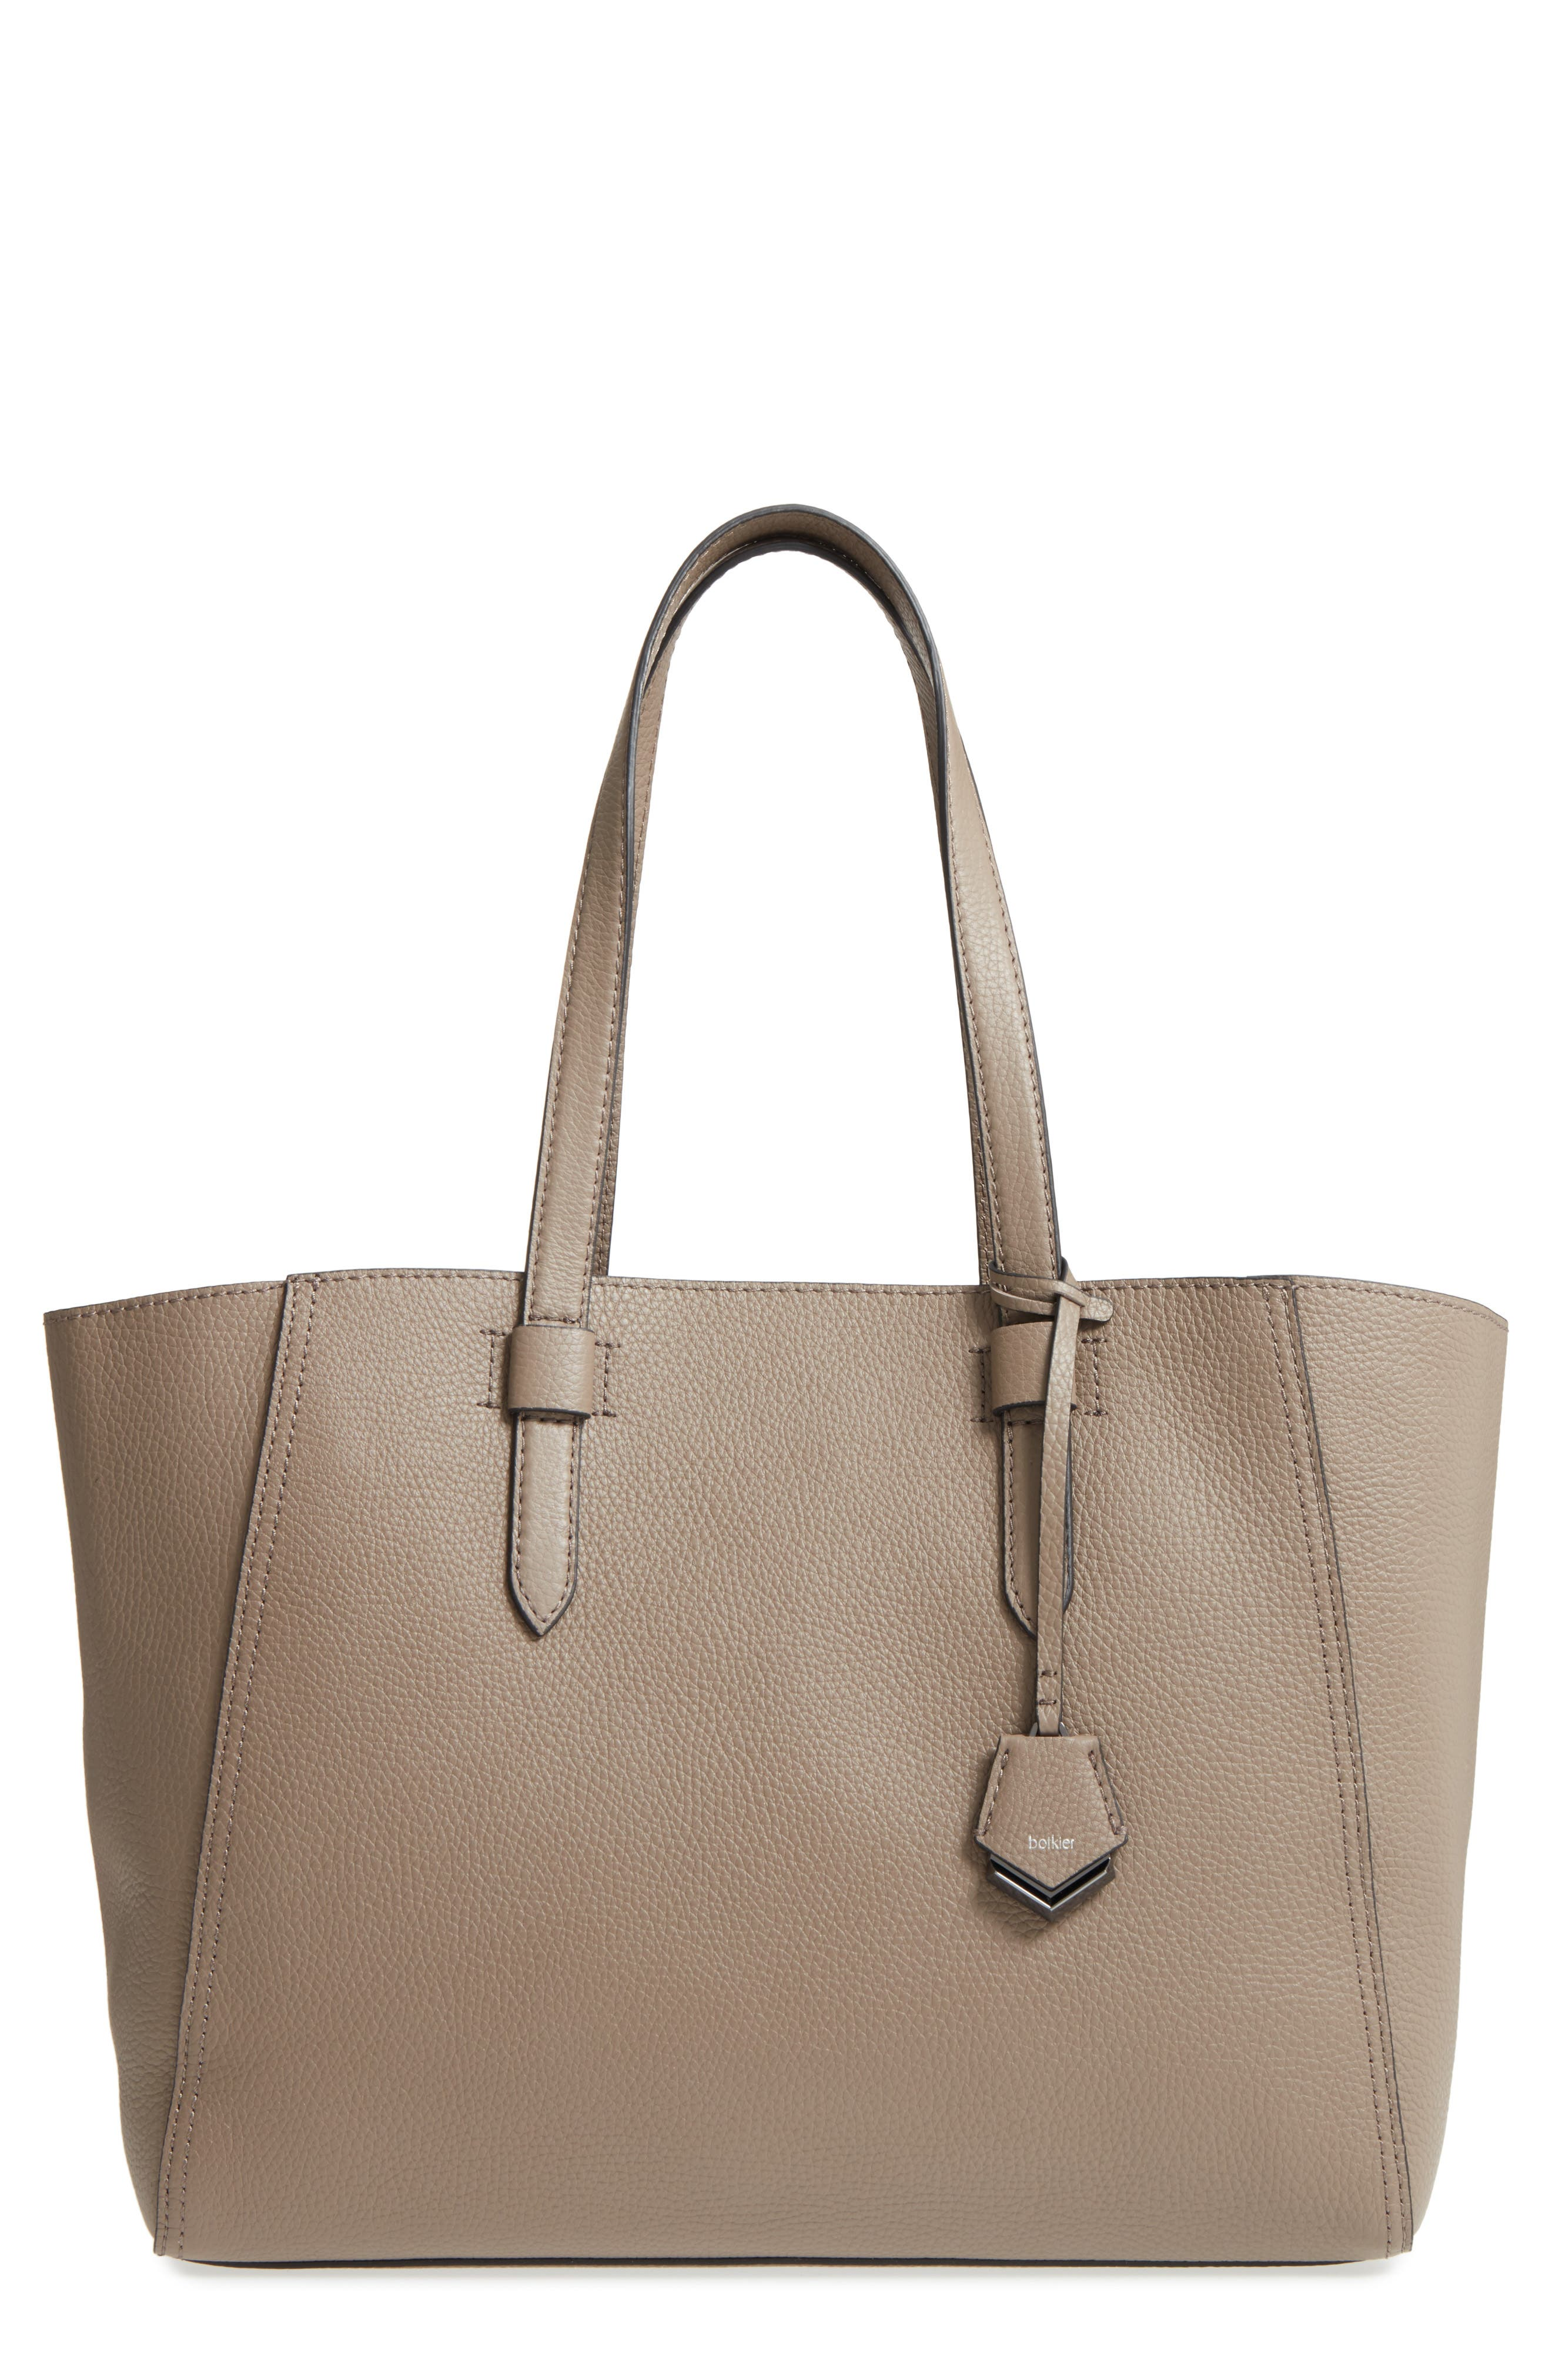 Alternate Image 1 Selected - Botkier Thompson Calfskin Tote